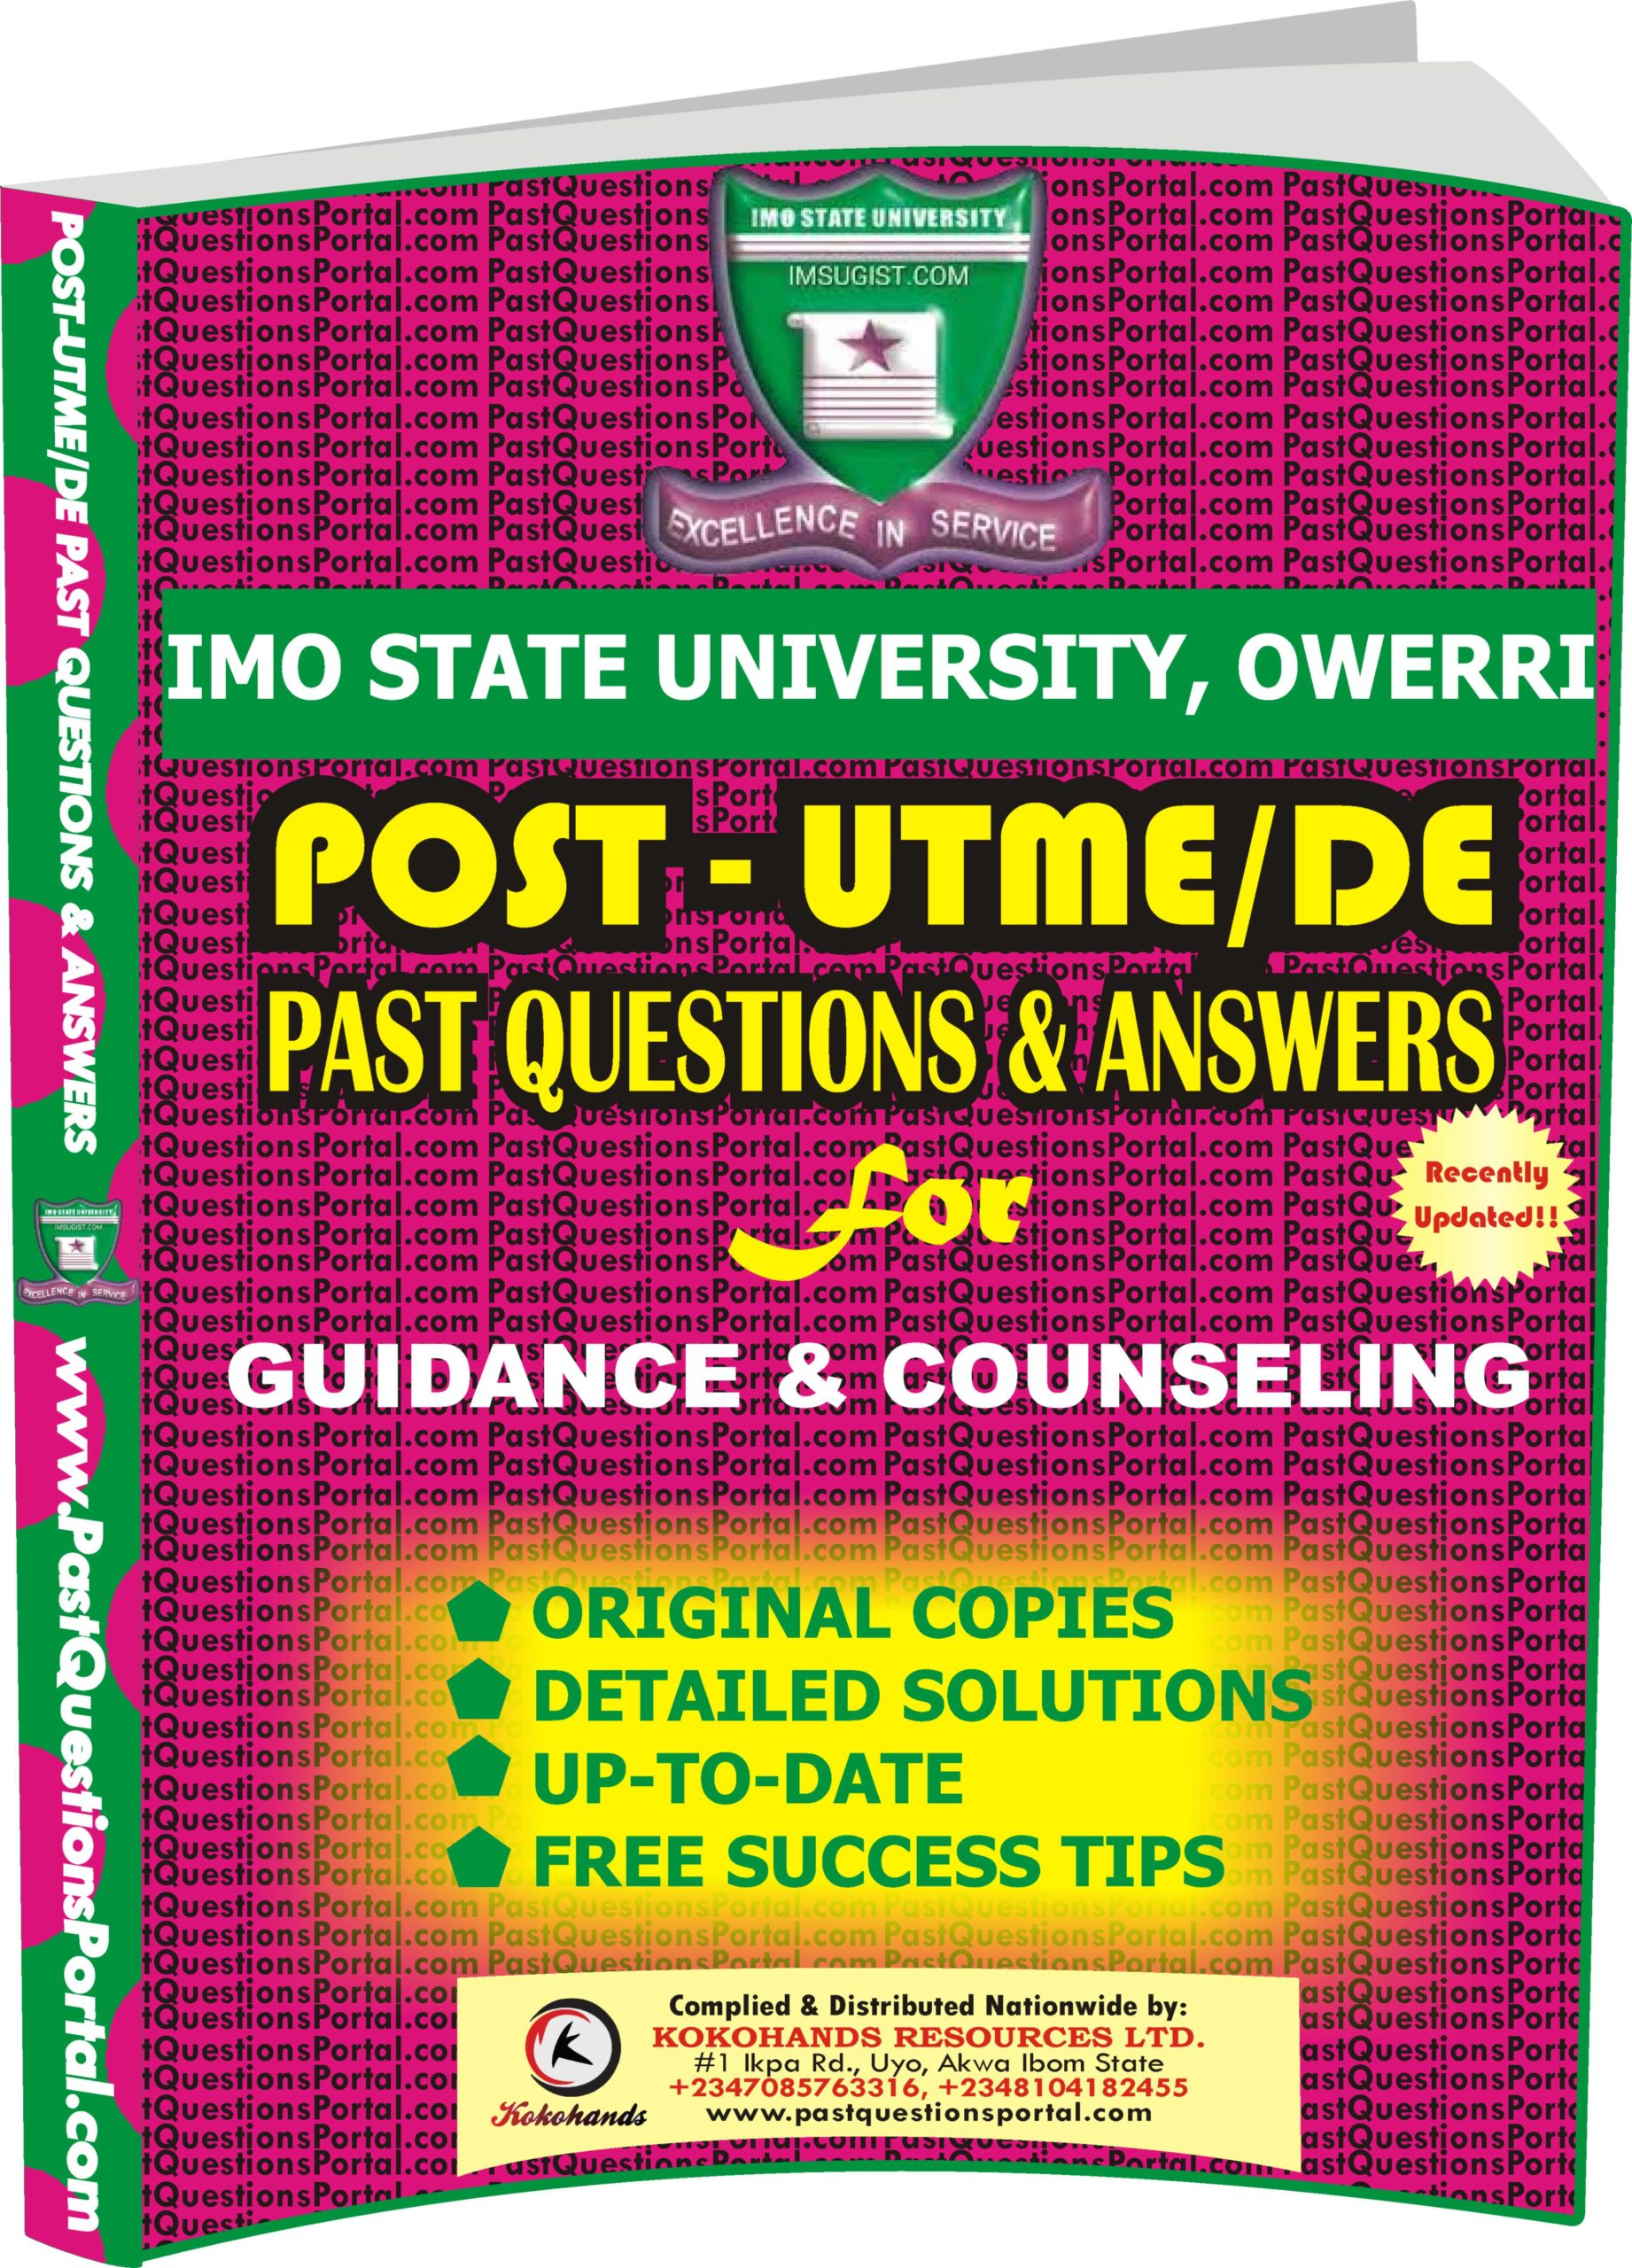 IMSU Post UTME Past Questions for GUIDANCE & COUNSELING